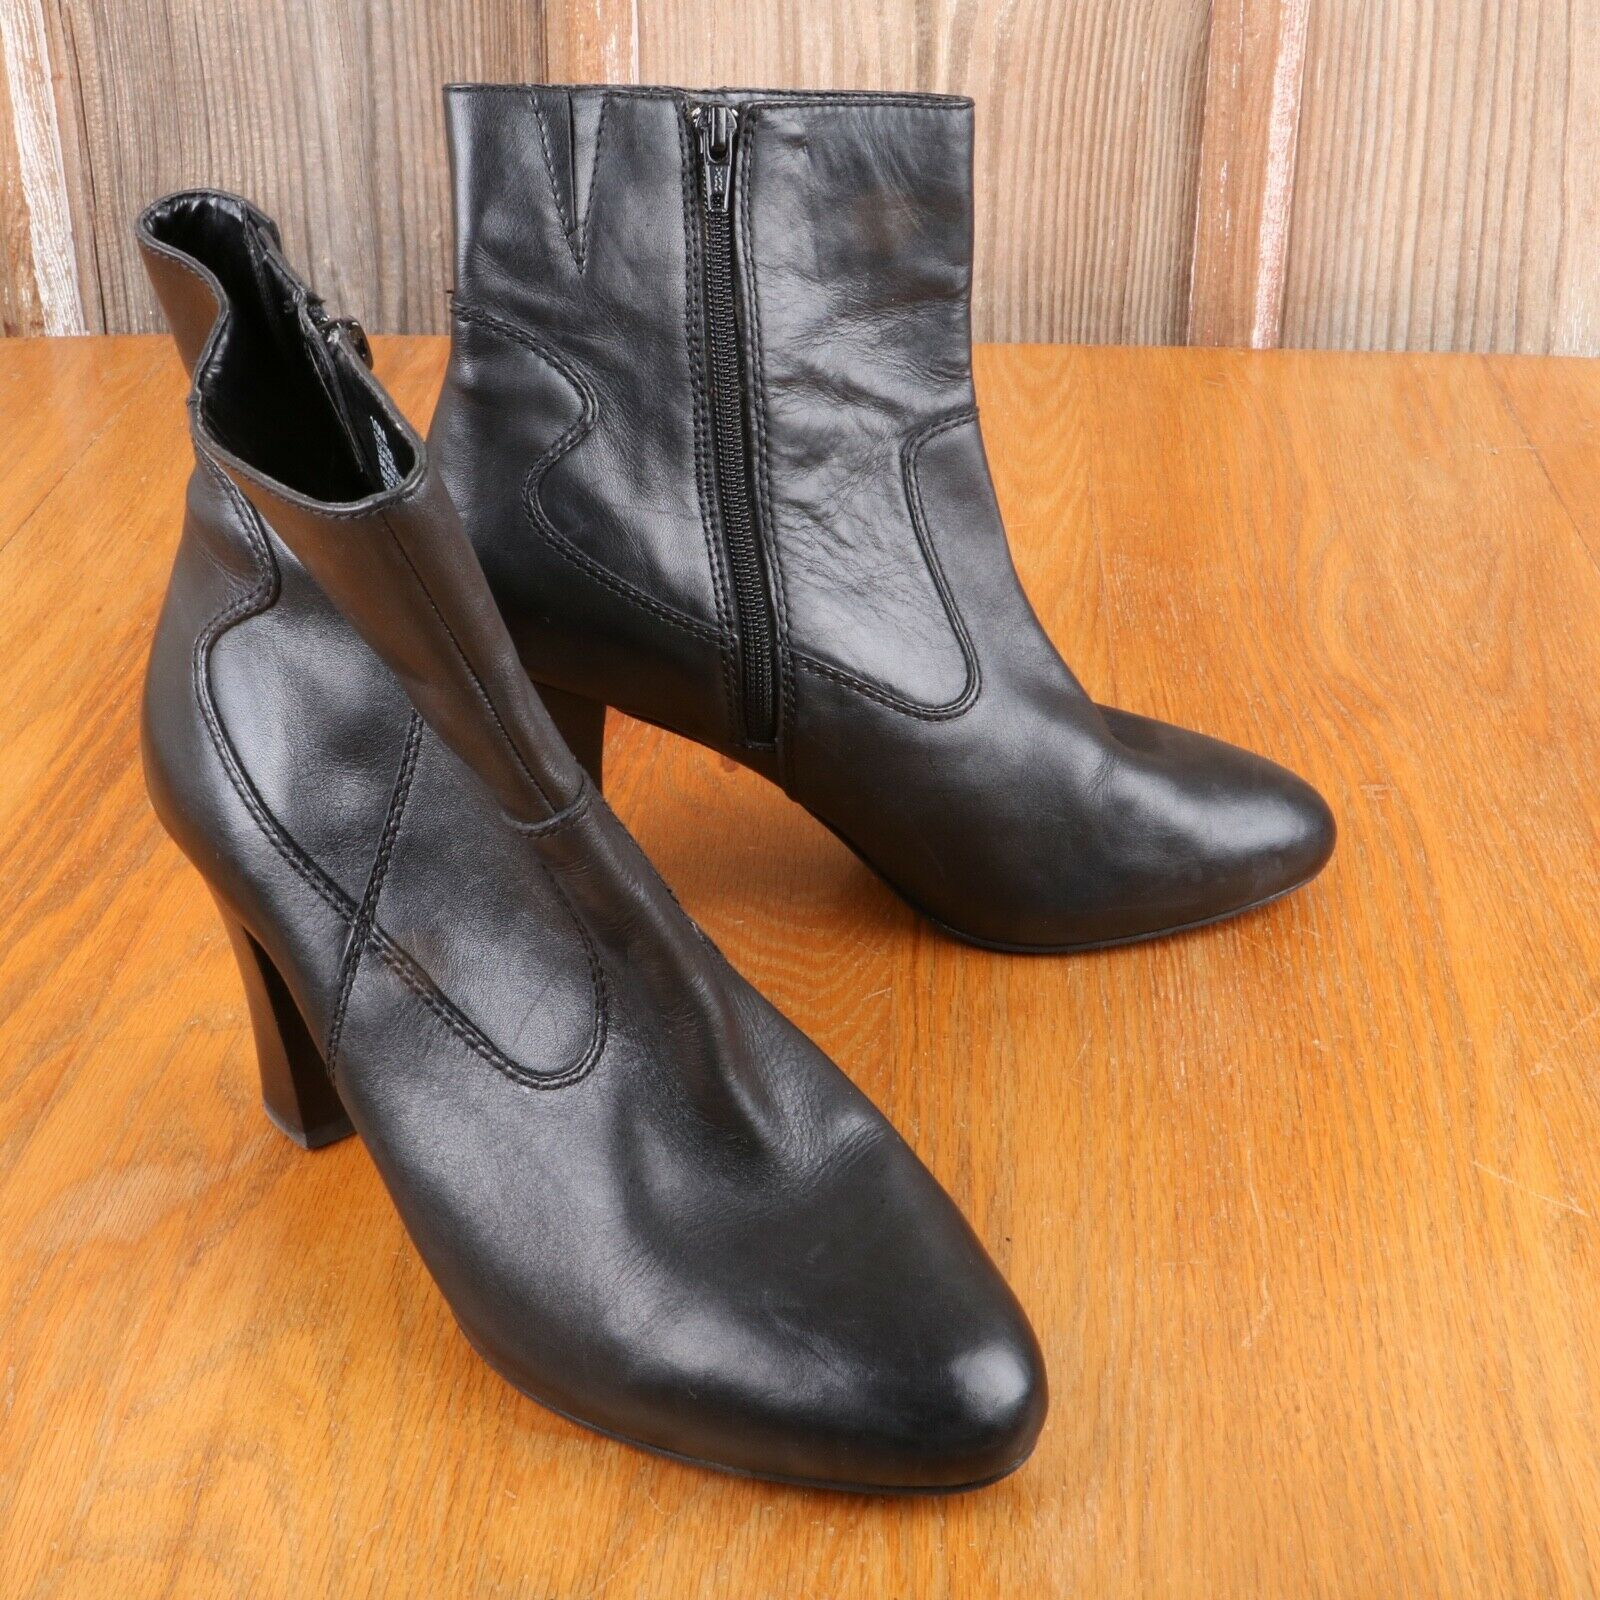 A.N.A. A New Approach Black Zip Up Boots Heels Women's Size 10M